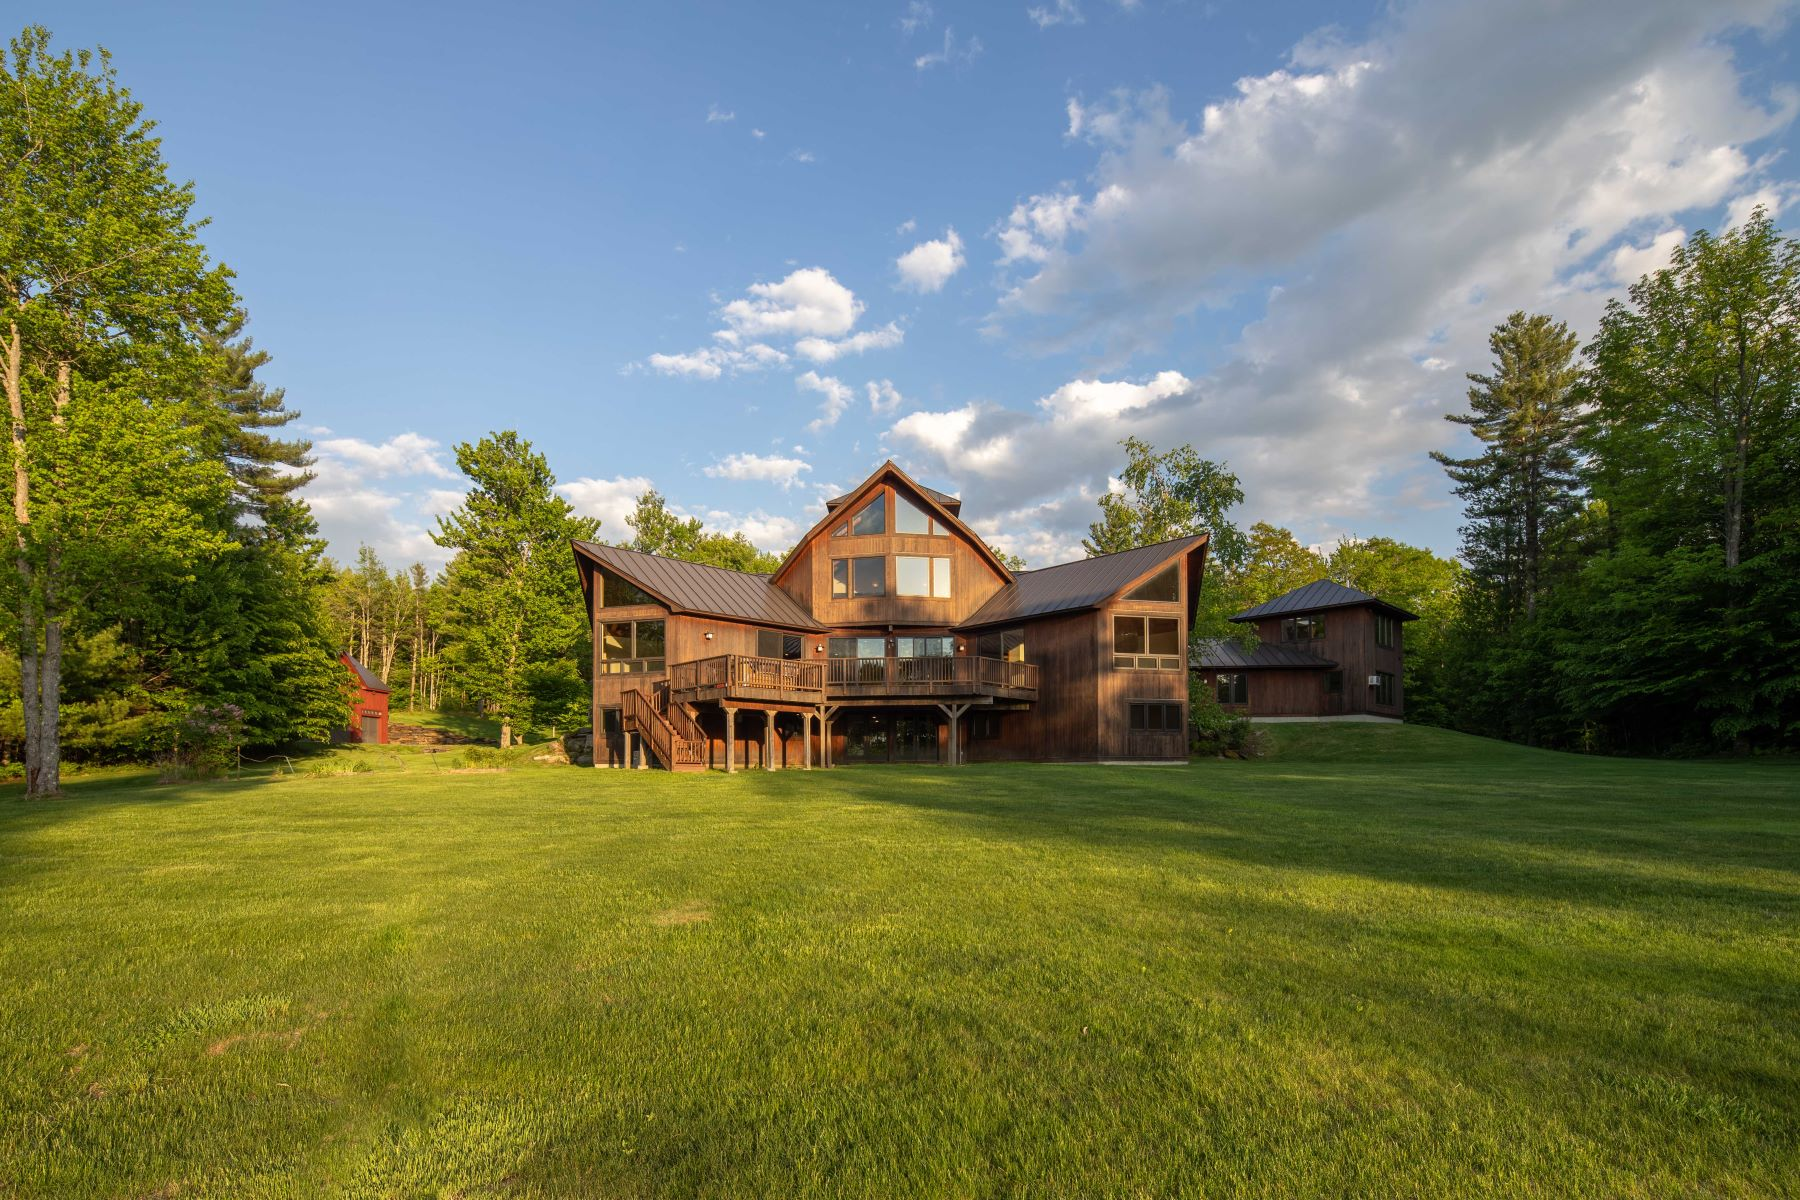 Single Family Homes for Active at Hanover Mountain Retreat 56 King Road Hanover, New Hampshire 03755 United States